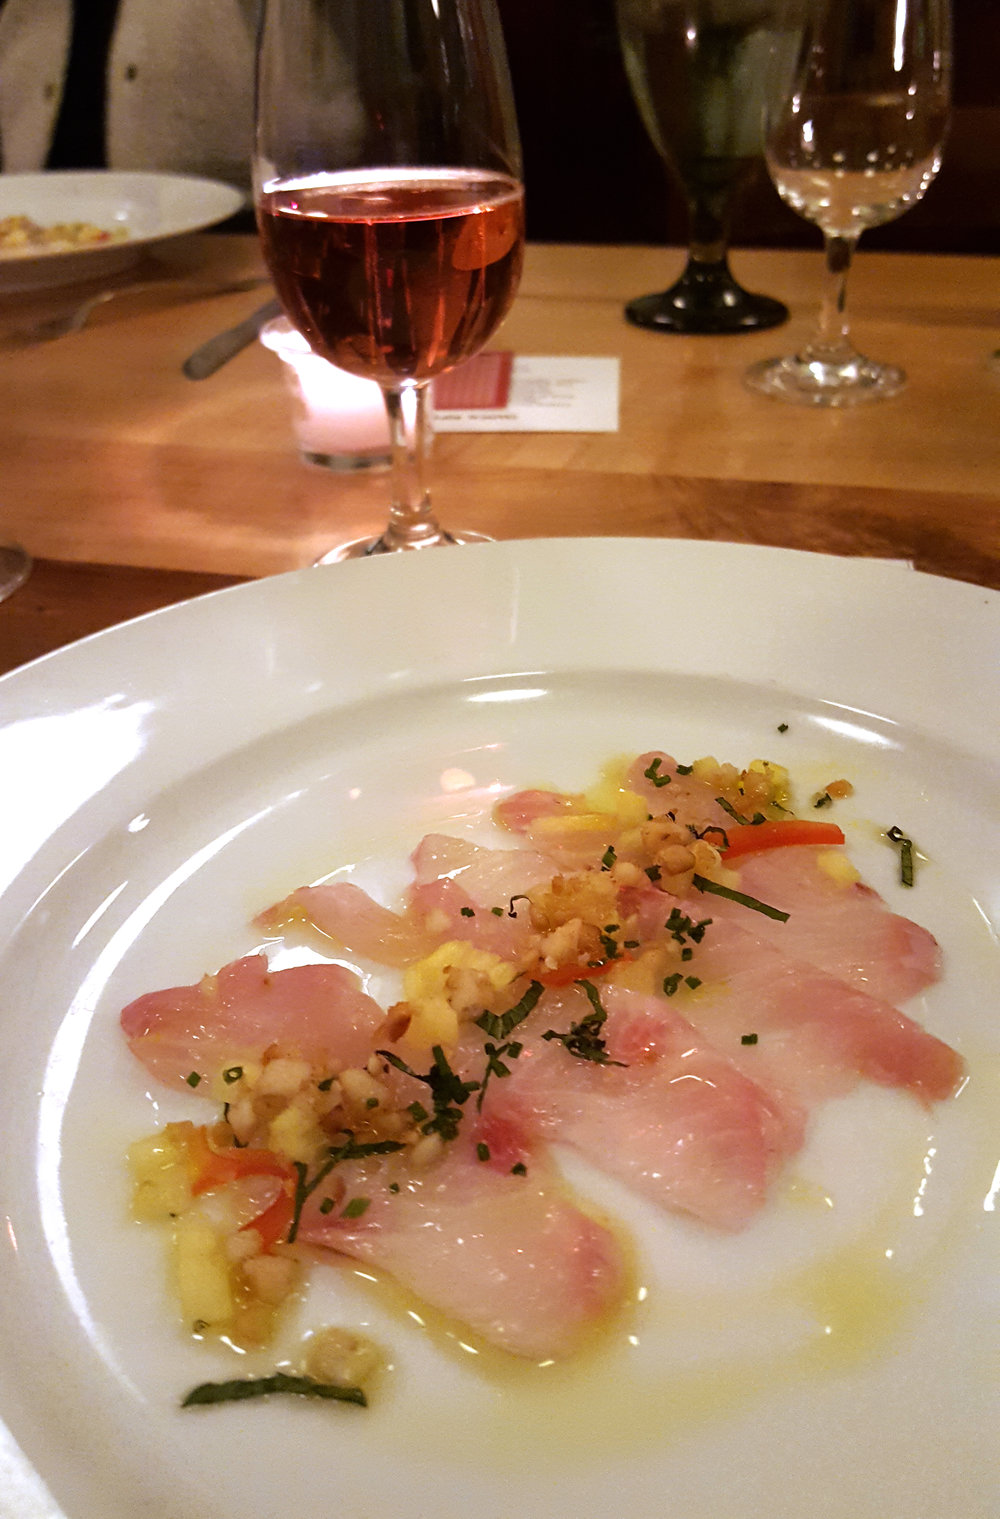 Copy of First course, Kanpachi Crudo